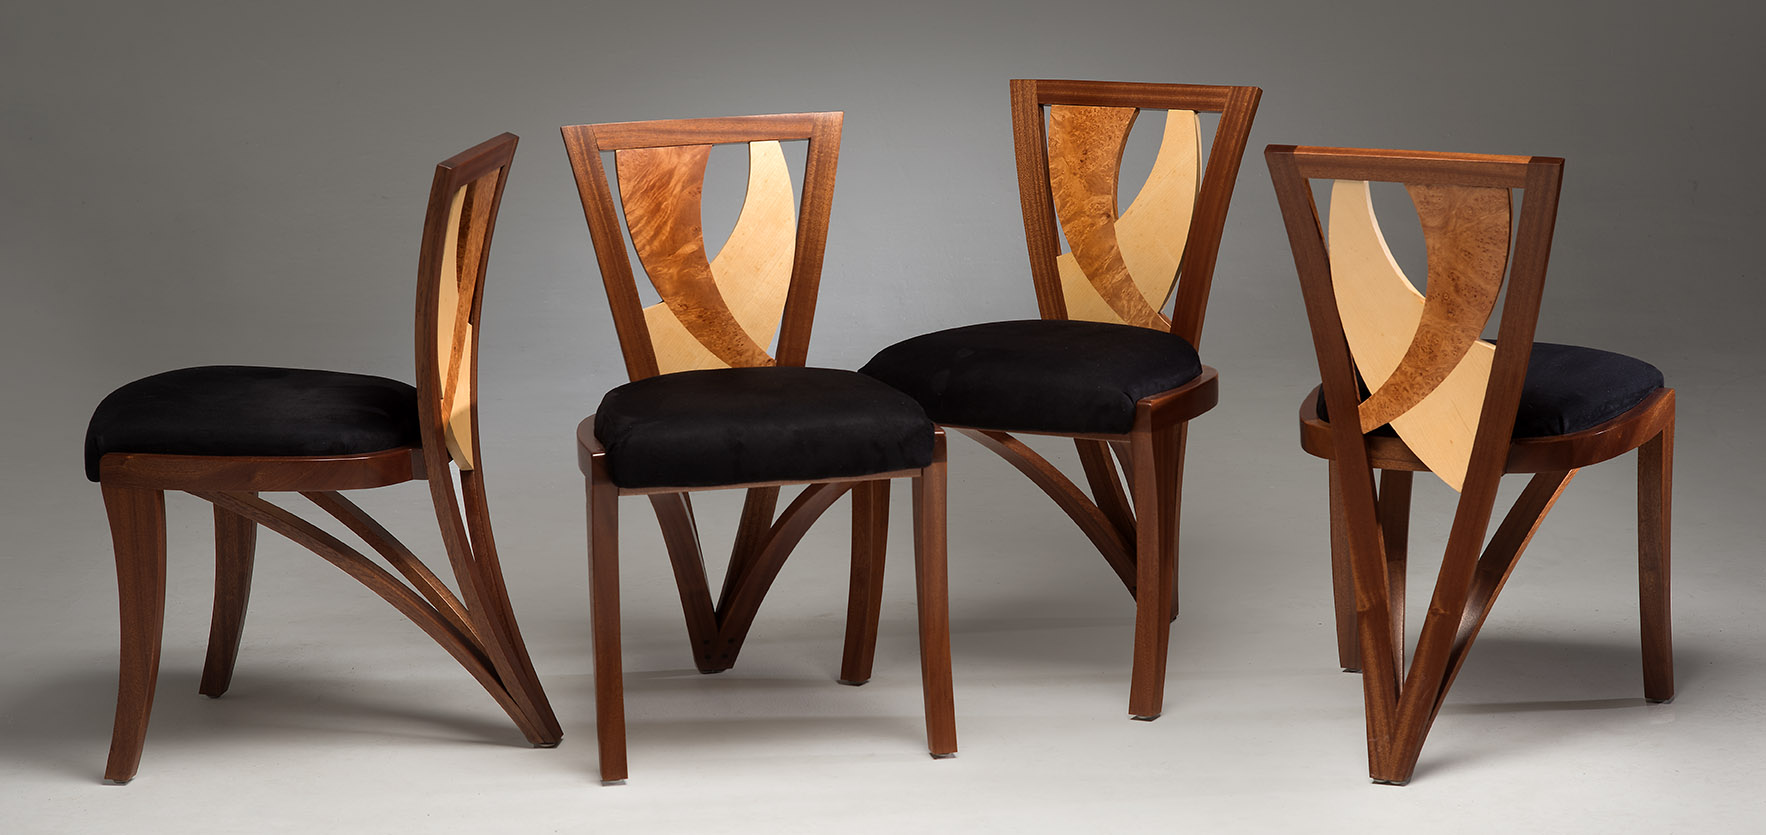 tuck-chairs-19-sm.jpg